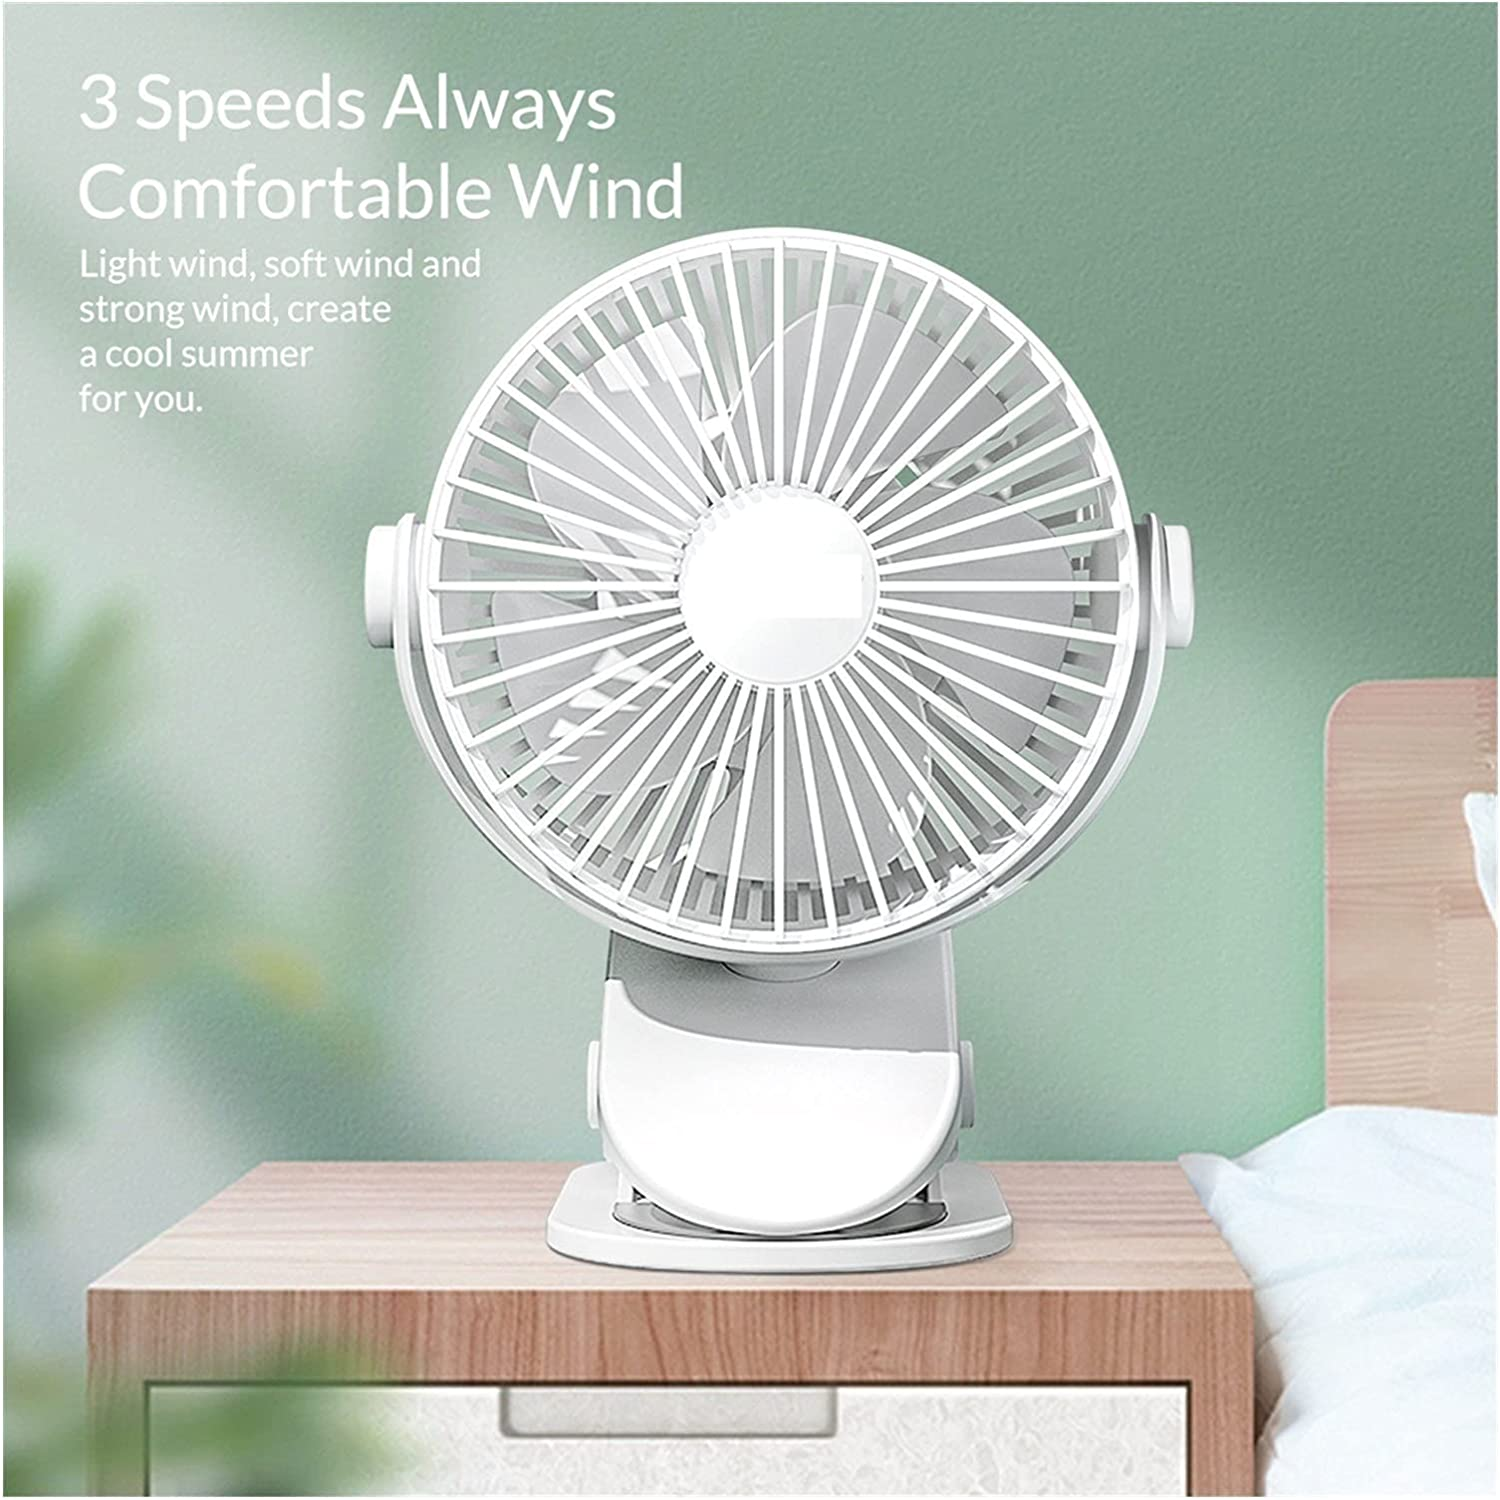 Lingwu Clip On Fan for Max 84% OFF Portable Tucson Mall Stroller Rechargeable Oper Baby